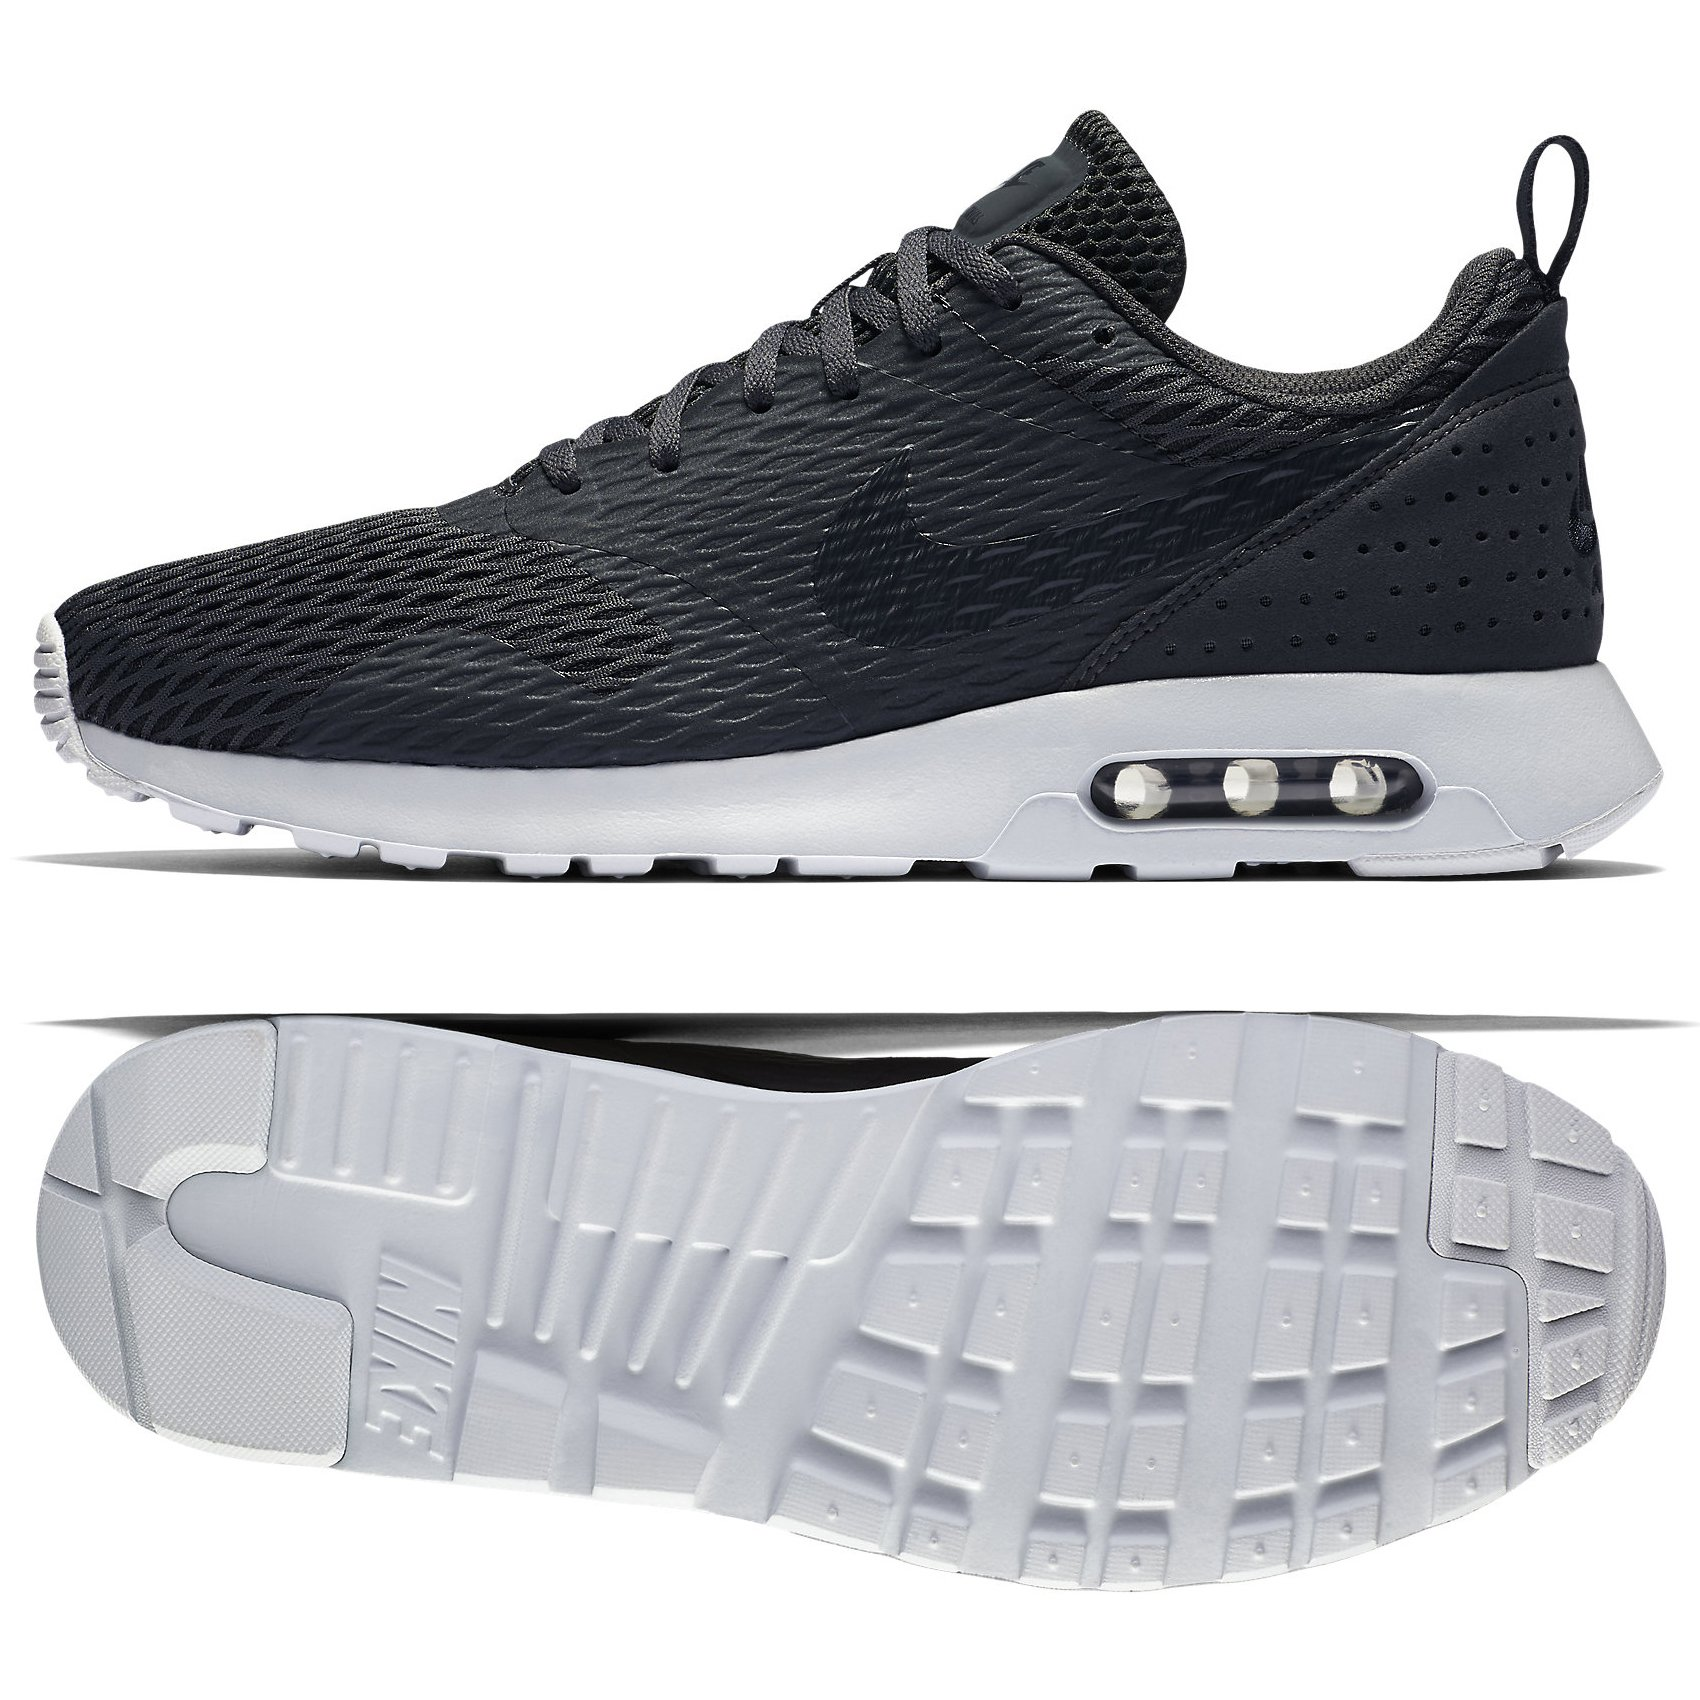 super popular 3f9a4 10f3b Galleon - NIKE Men s Air Max Tavas Anthracite Pure Platinum Ankle-High  Cross Trainer Shoe - 8.5M